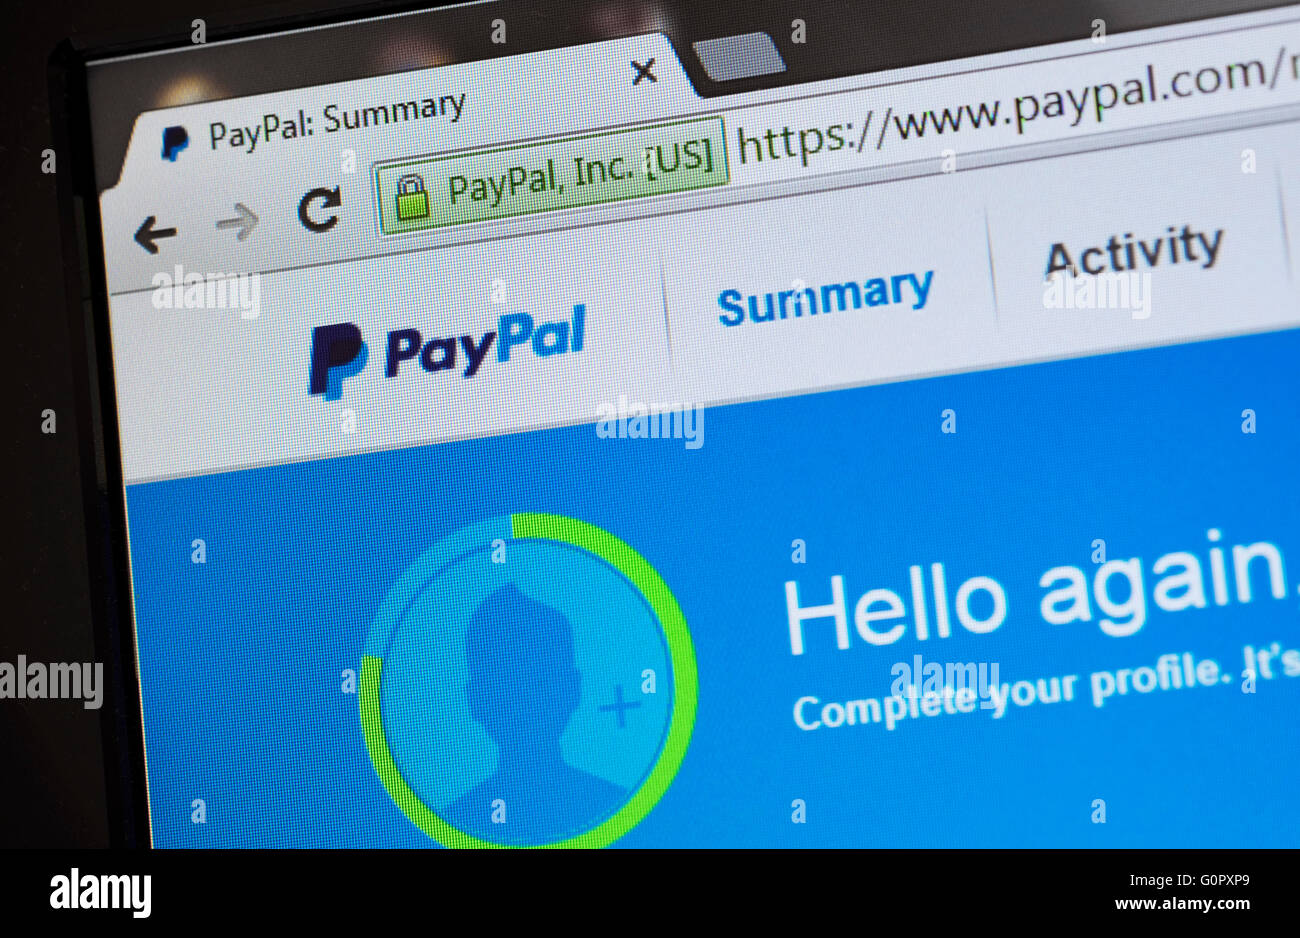 paypal summary internet home page - Stock Image